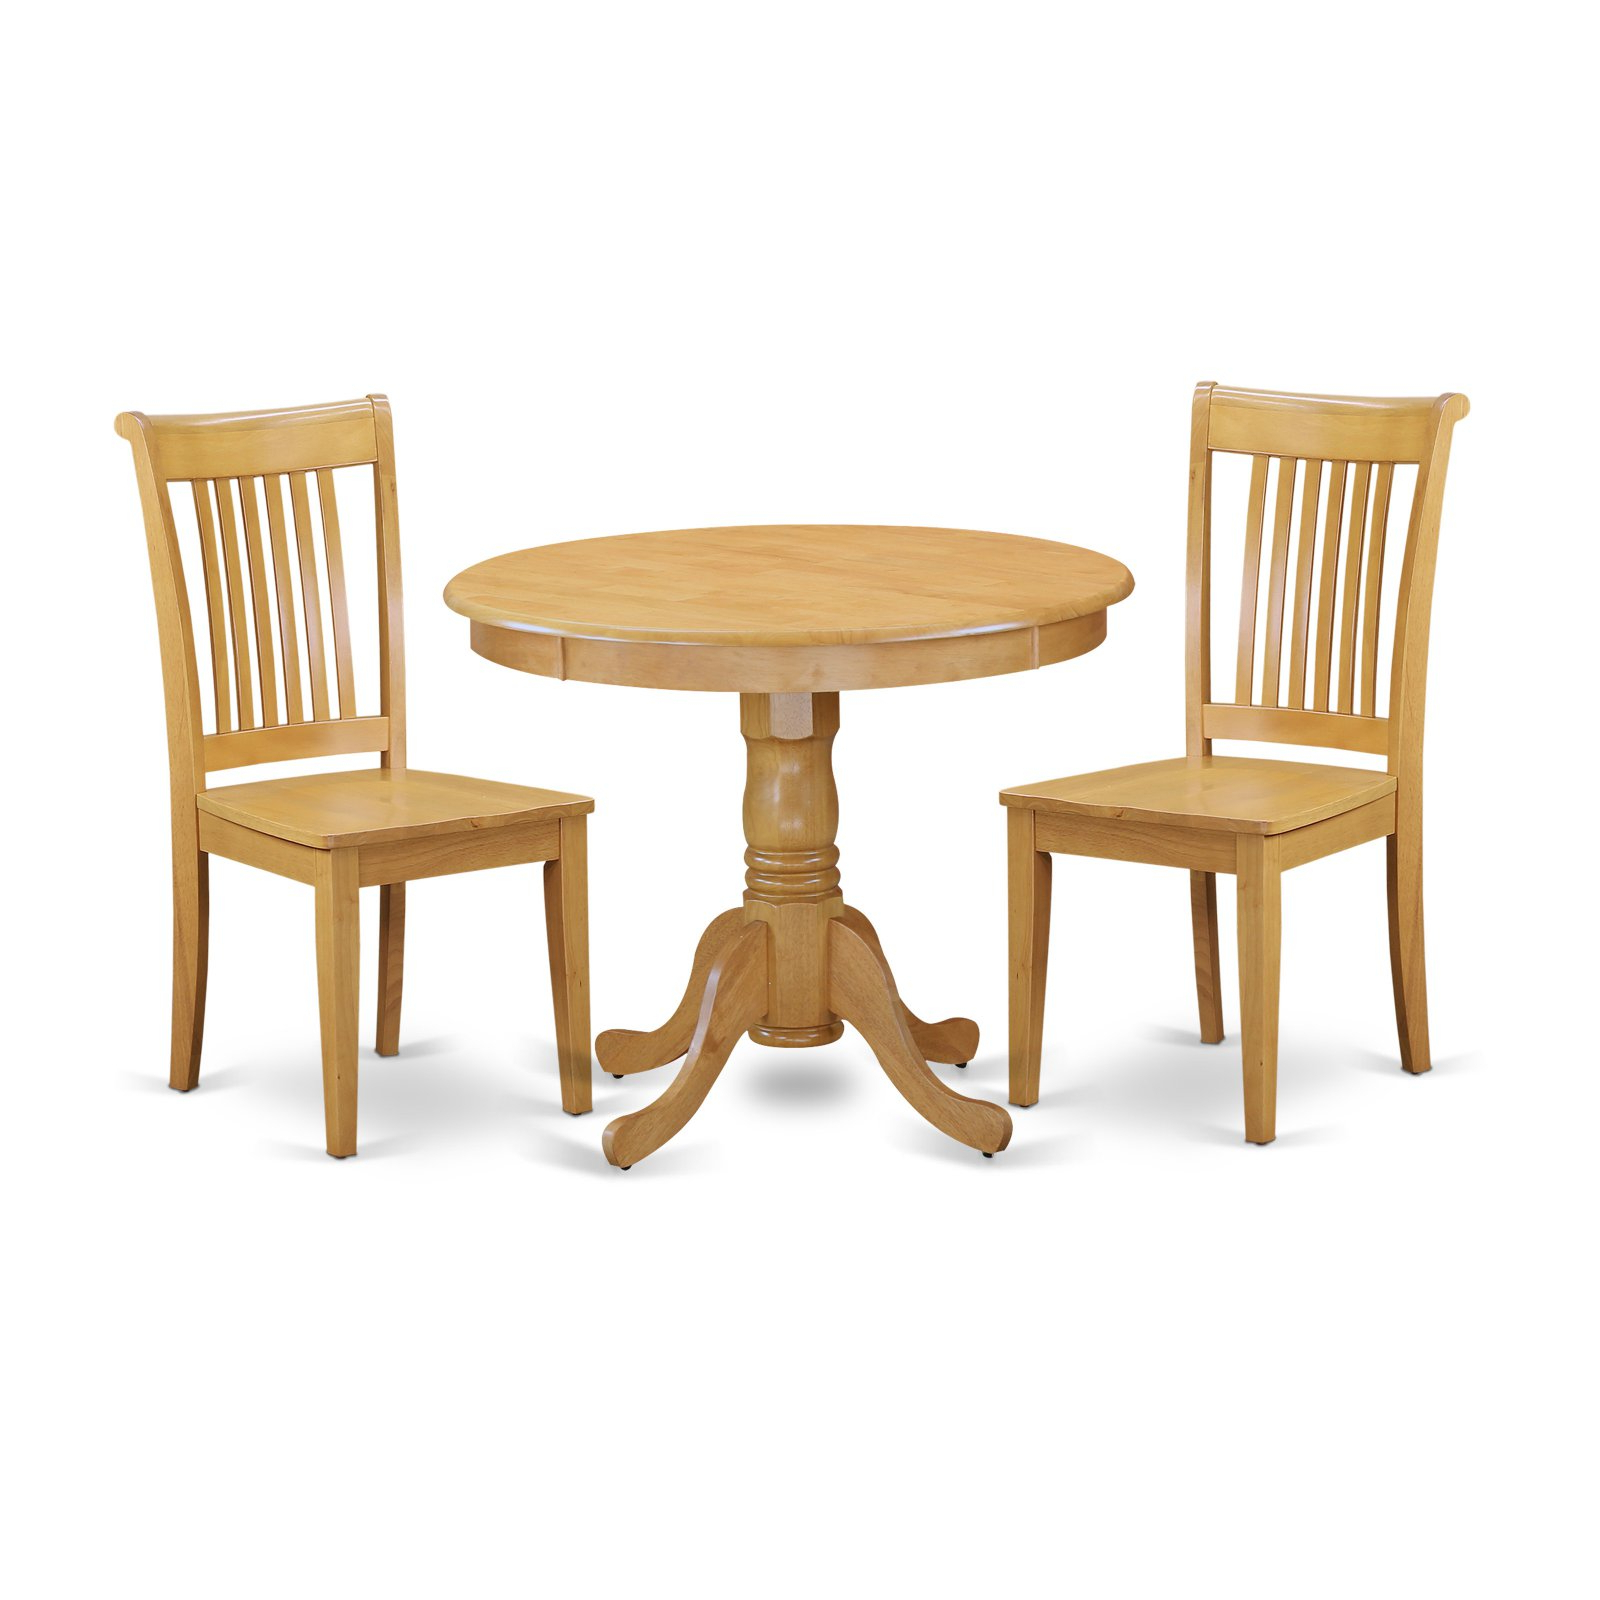 Most Recently Released East West Furniture Antique Anpo3 Three Piece Round Pedestal Dining With Regard To Smyrna 3 Piece Dining Sets (View 12 of 25)